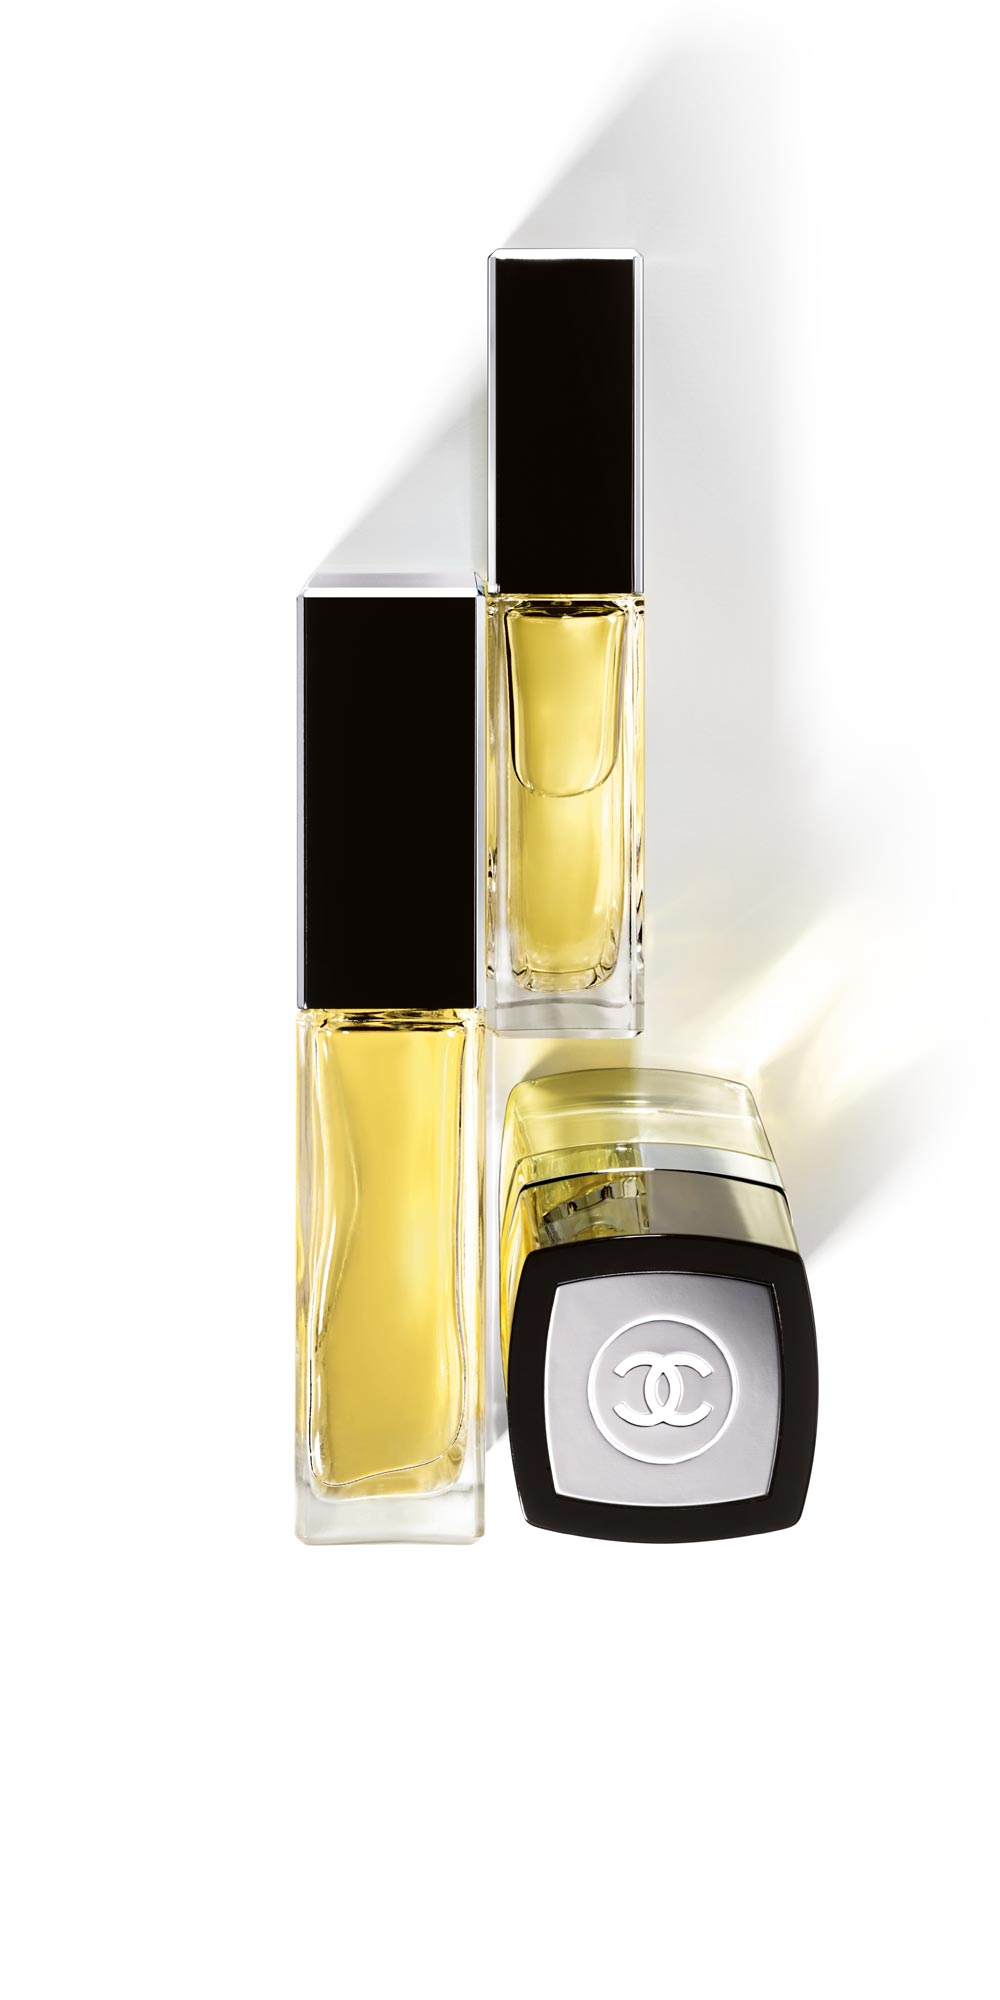 cristalle eau de parfum spray fragrance chanel. Black Bedroom Furniture Sets. Home Design Ideas